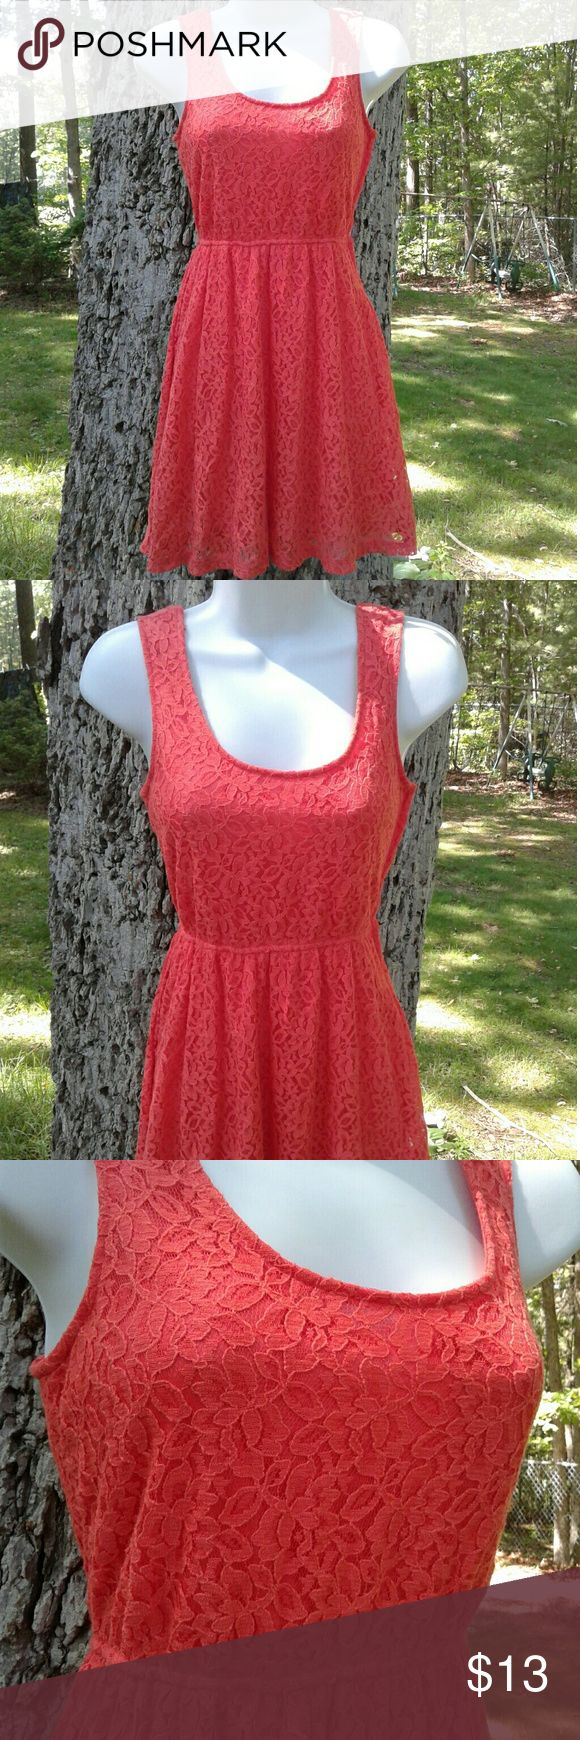 Orange Lace Dress Small Mossimo orange lace dress, zips up the side. Size small Mossimo Supply Co. Dresses Mini